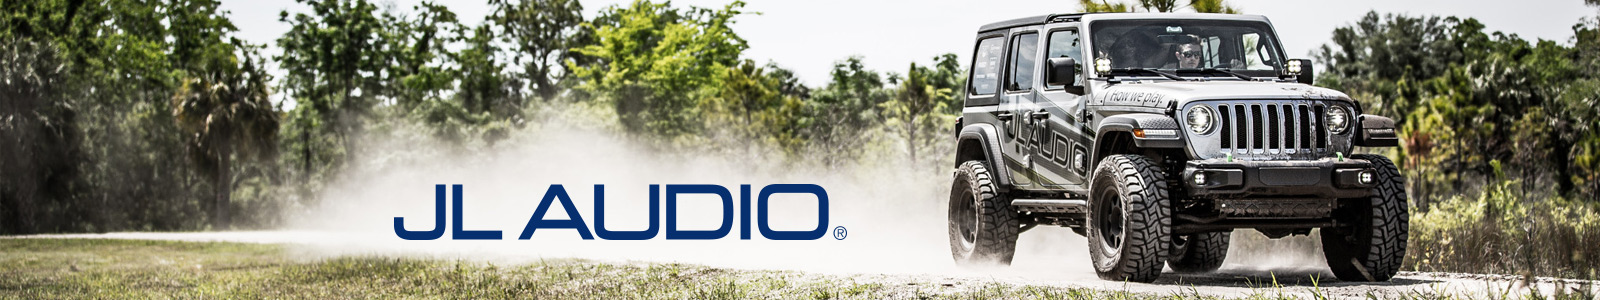 JL Audio - Audio that drives you - Authorized dealer